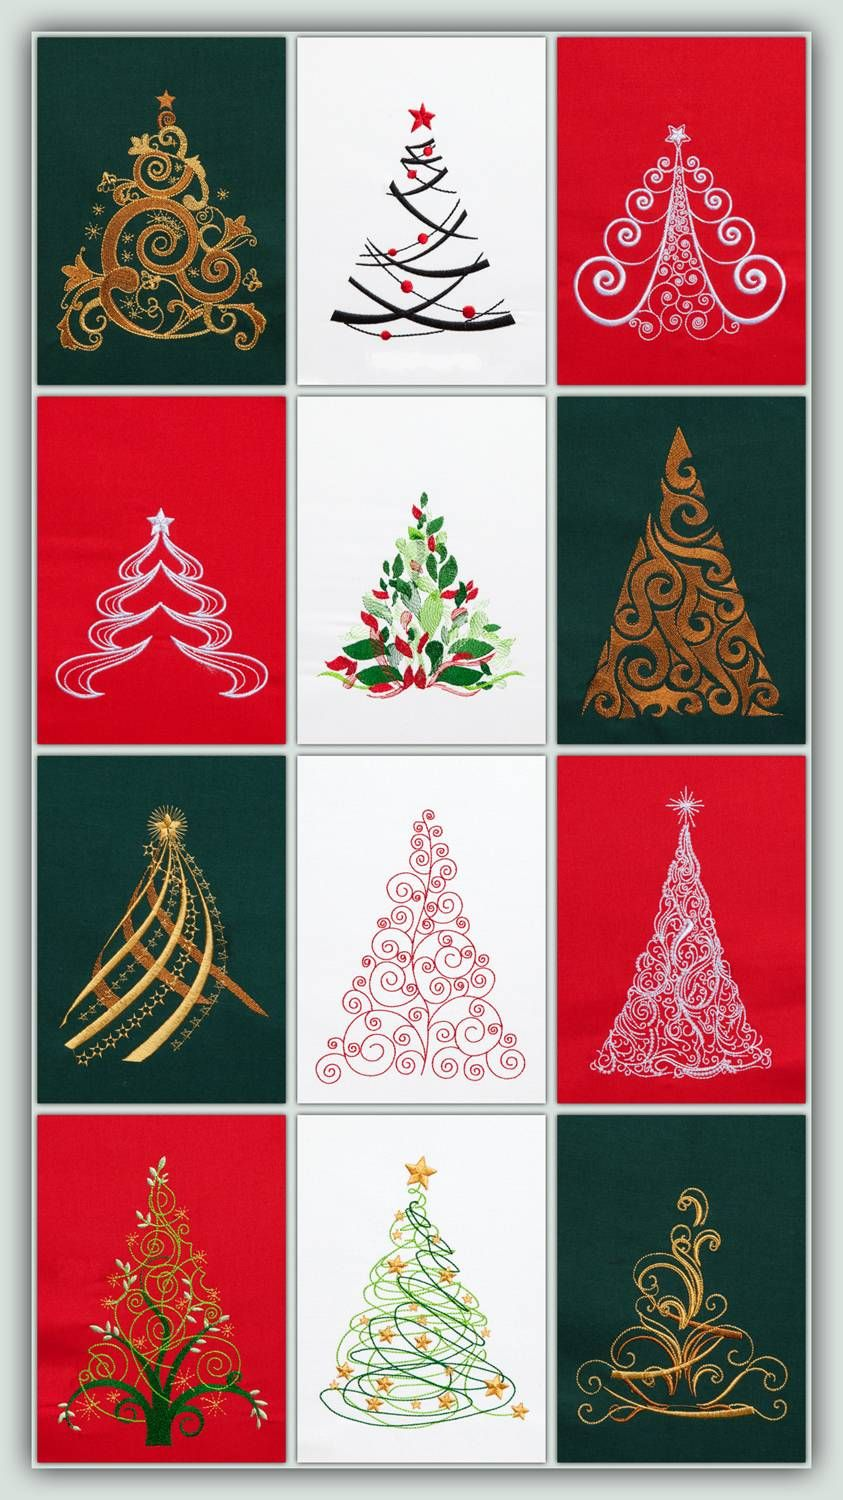 Bfc1272 O Christmas Trees Machine Embroidery Christmas Machine Embroidery Projects Machine Embroidery Designs